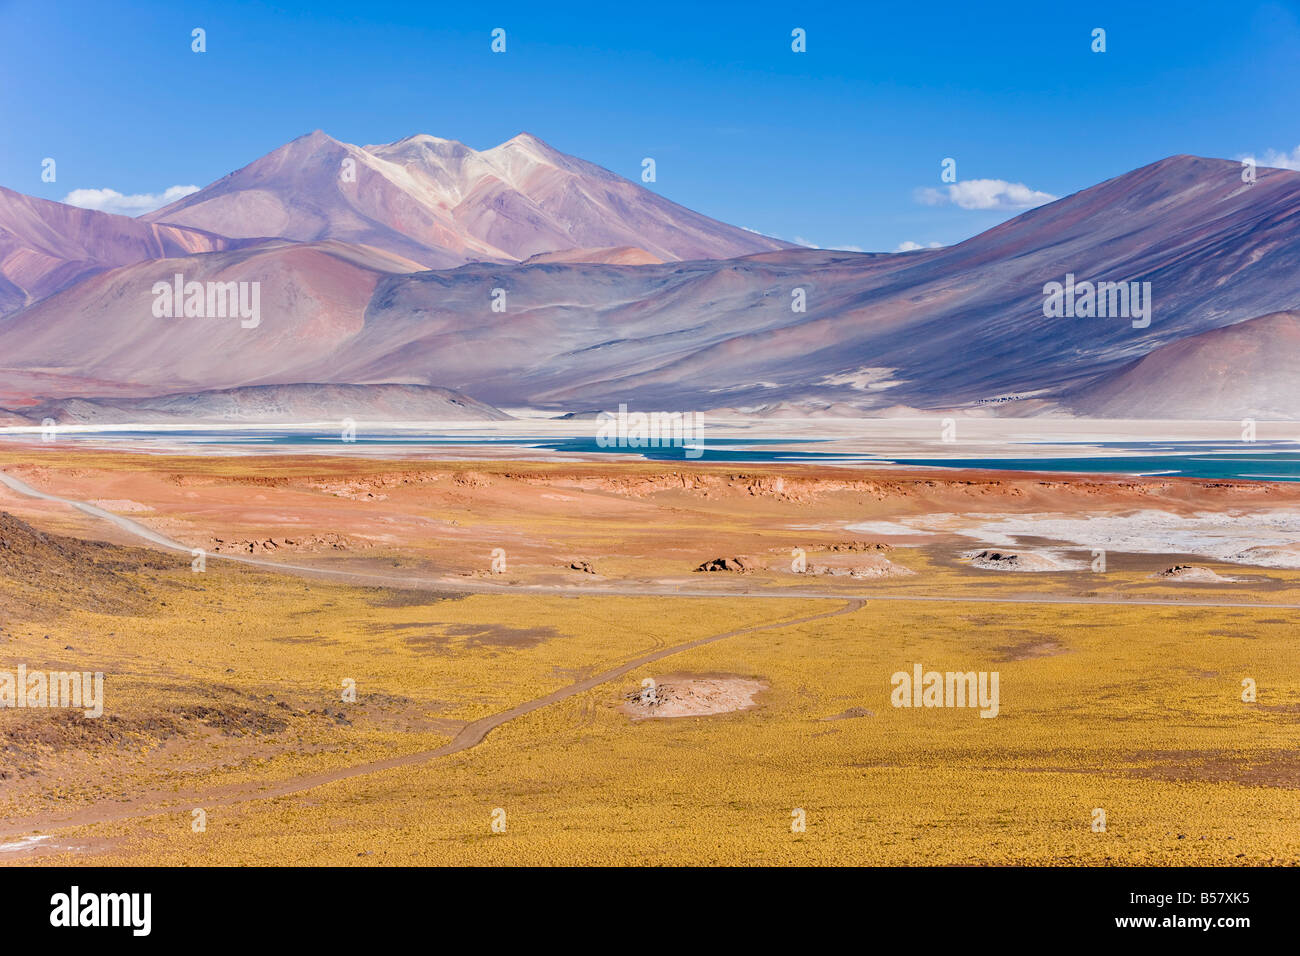 The altiplano, Los Flamencos National Reserve, Atacama Desert, Antofagasta Region, Norte Grande, Chile, South America - Stock Image